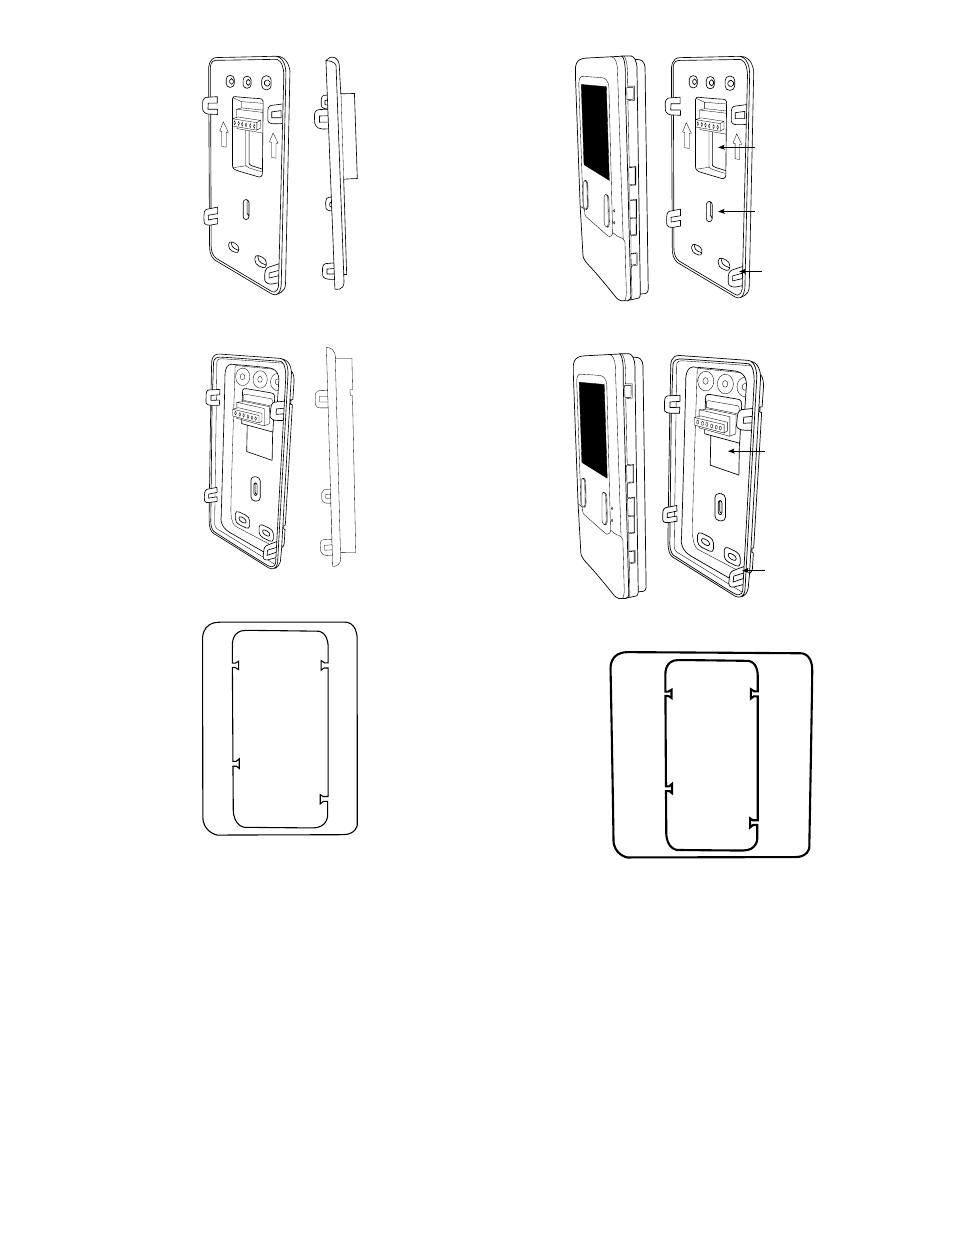 nuheat relay wiring diagram